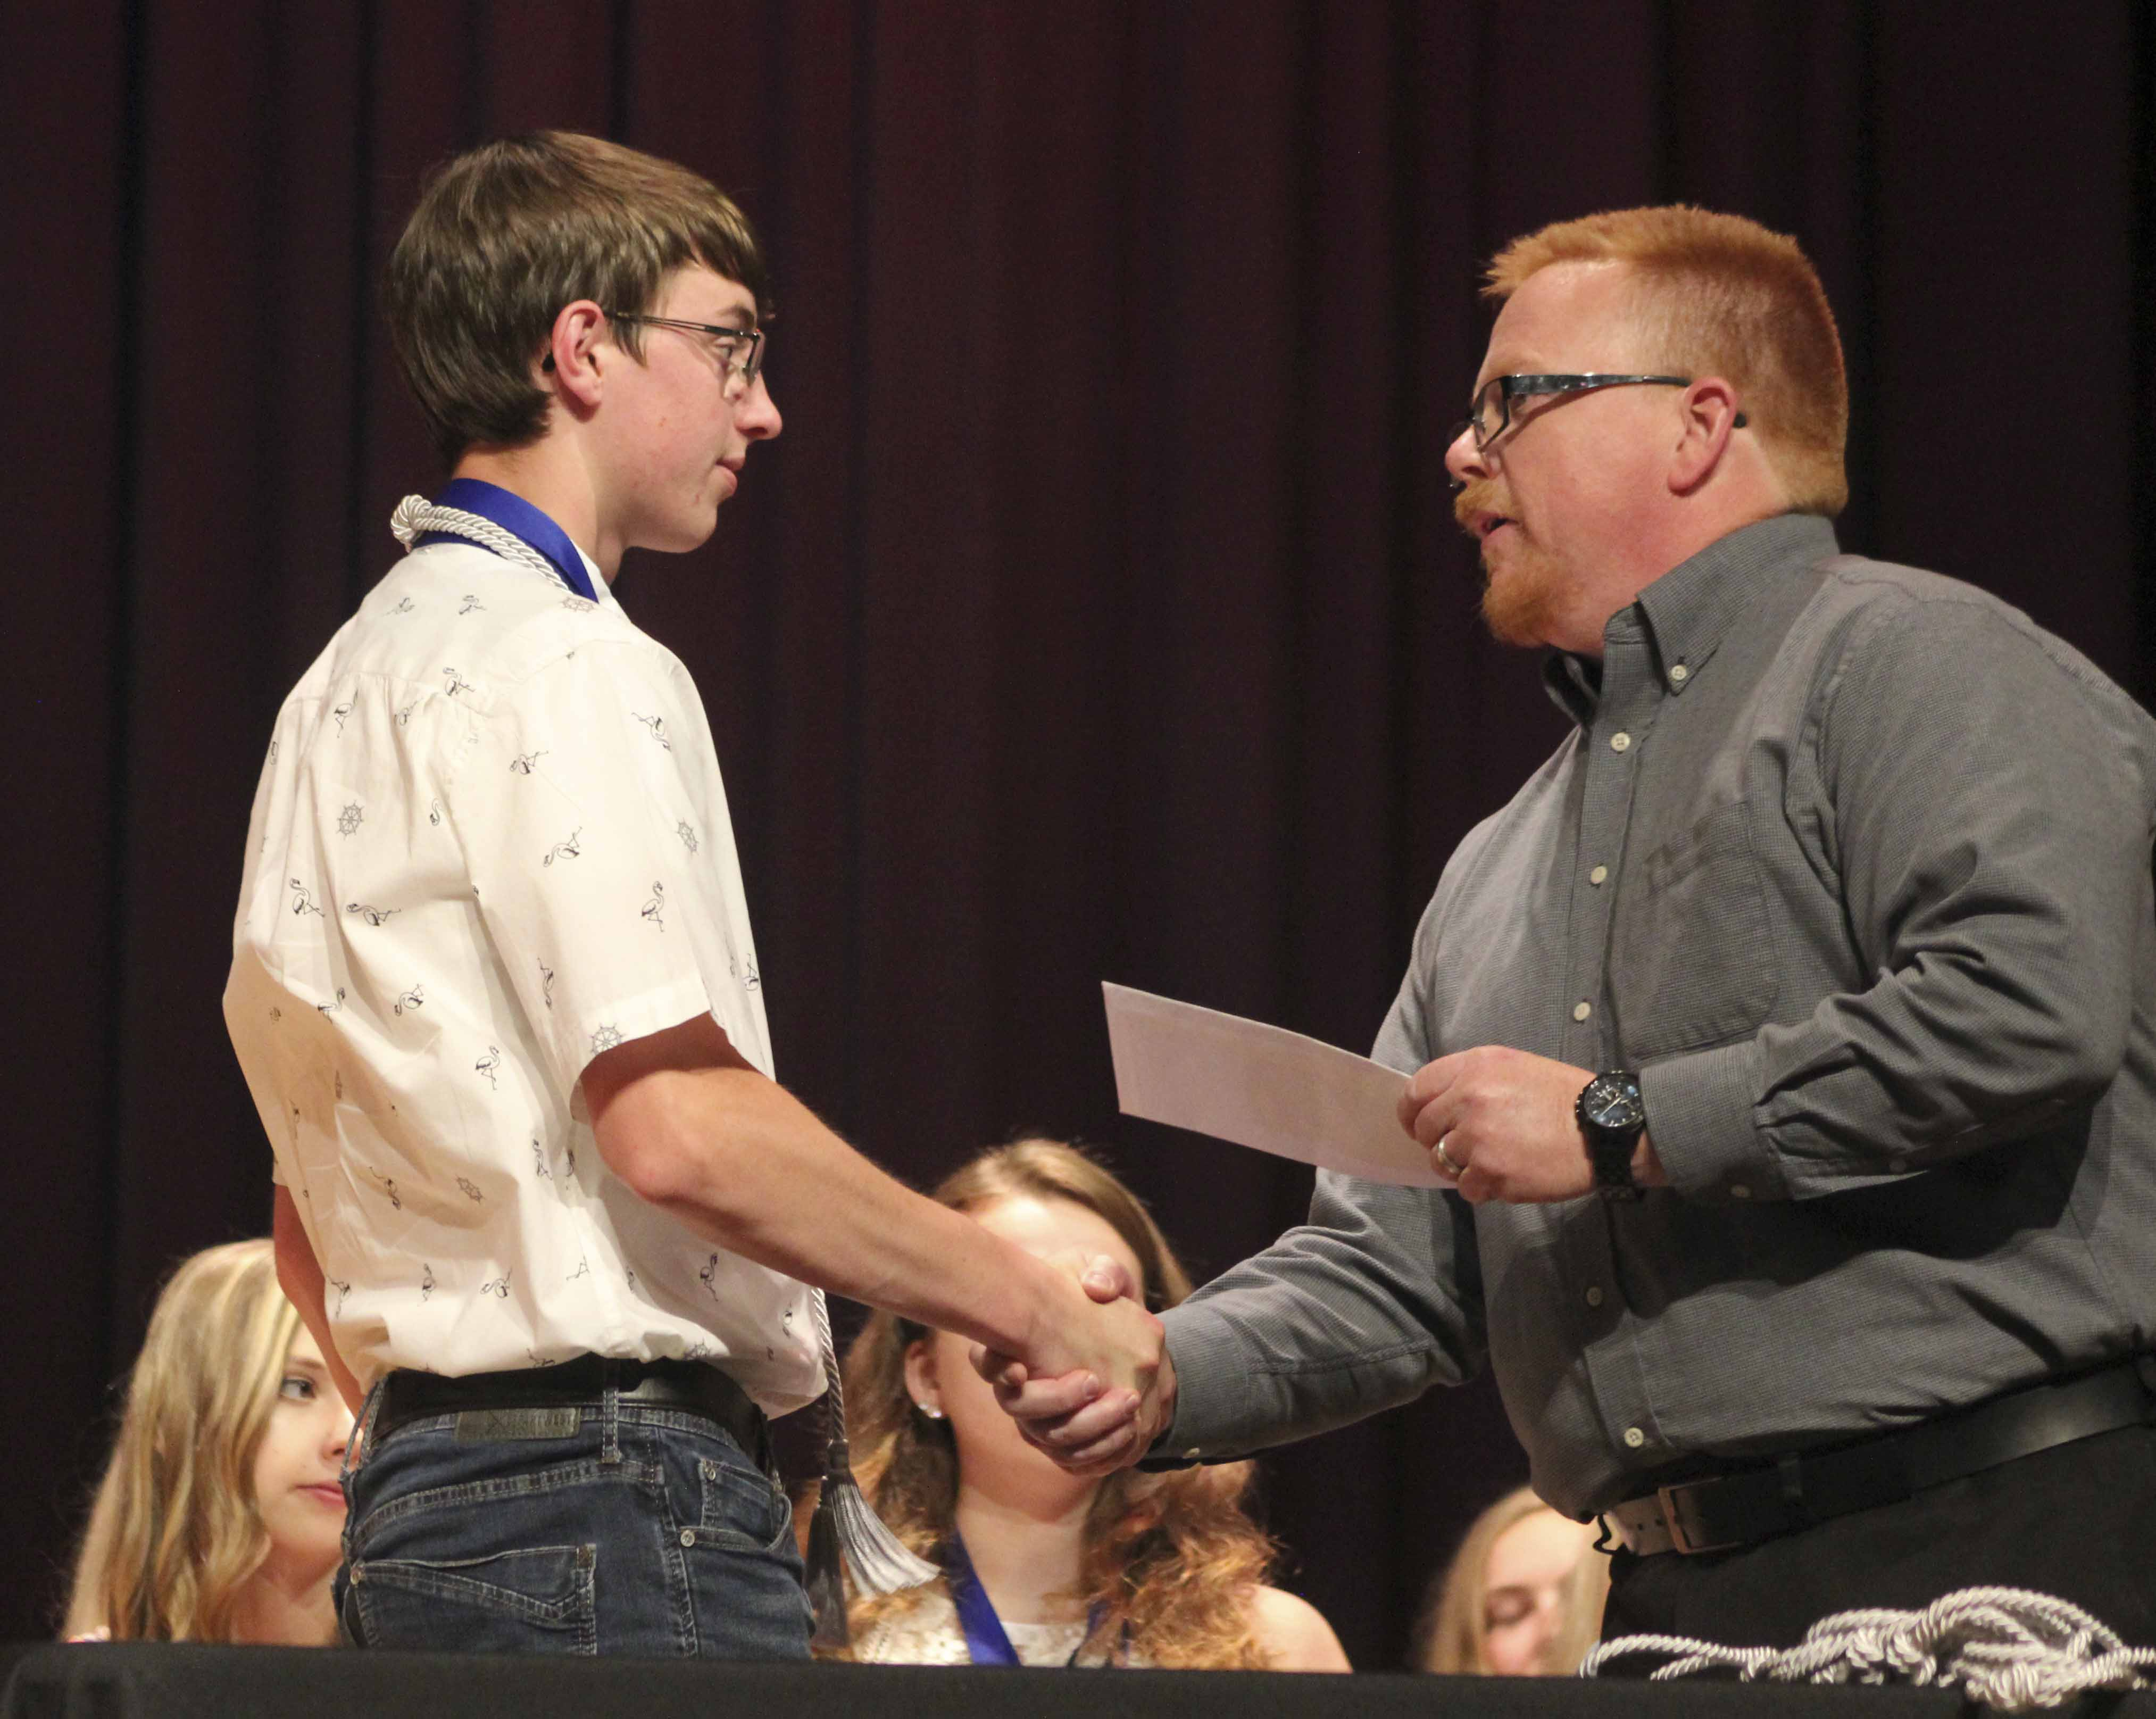 Monticello High School seniors received dozens of scholarships during Honors Night, held May 22 in the MHS Auditorium. Senior Ben Barnhart accepts a Monticello Veterans Organizations Memorial Scholarship from Doug Bean. (Photos by Pete Temple)